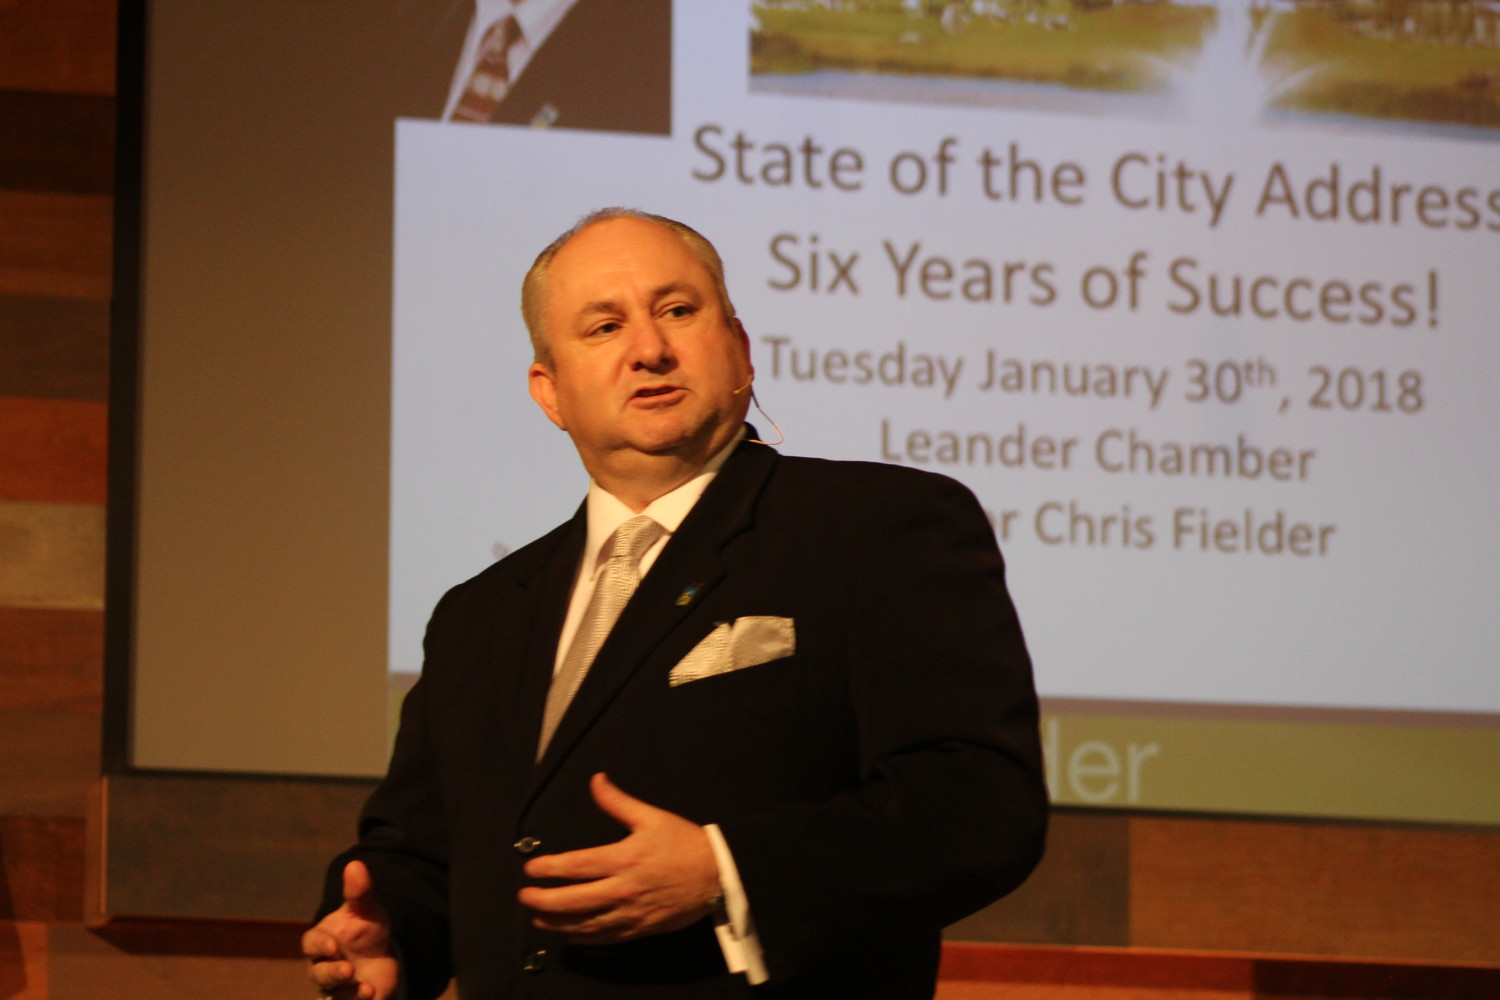 Leander Mayor Chris Fielder speaks at his final State of the City address at Hill Country Bible Church in Leander, Tuesday, Jan. 30.